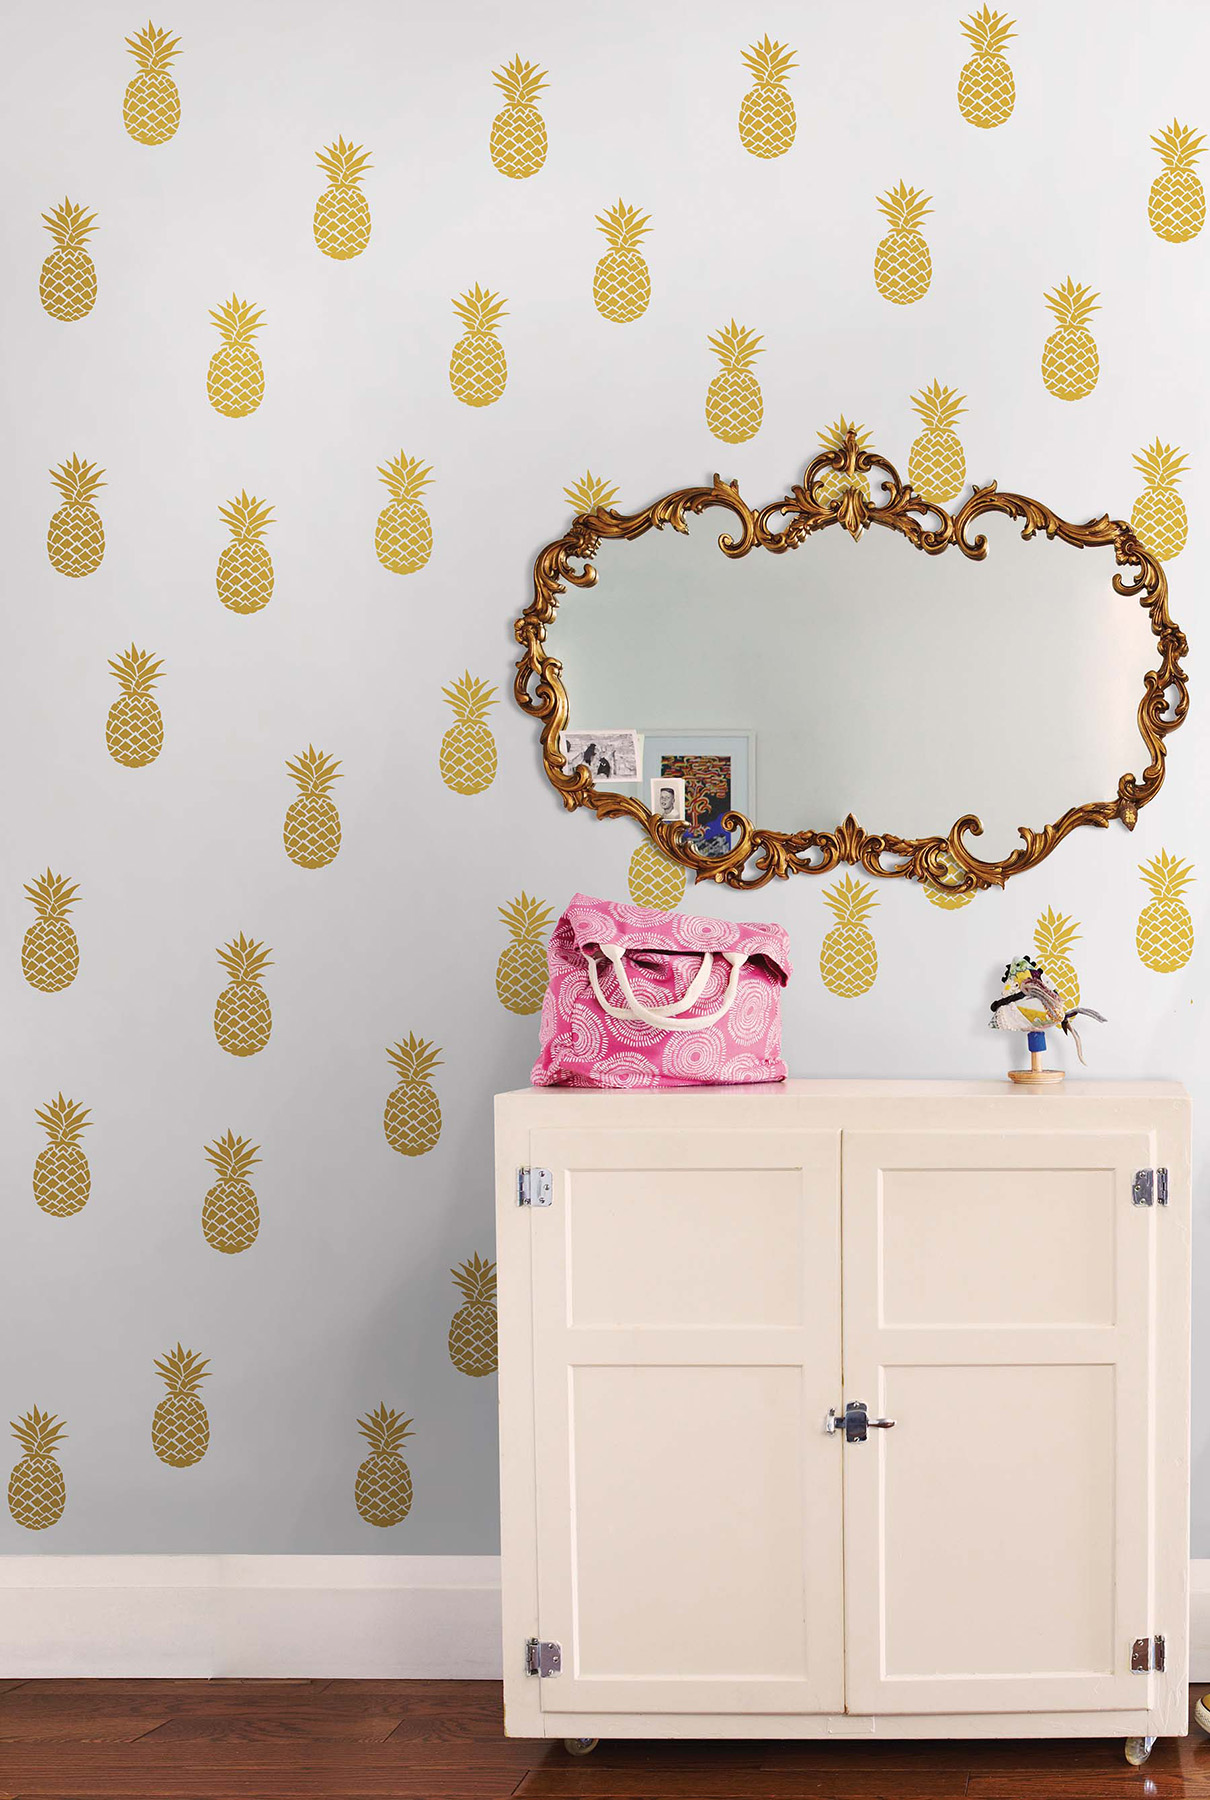 metallic gold pineapple wall decals